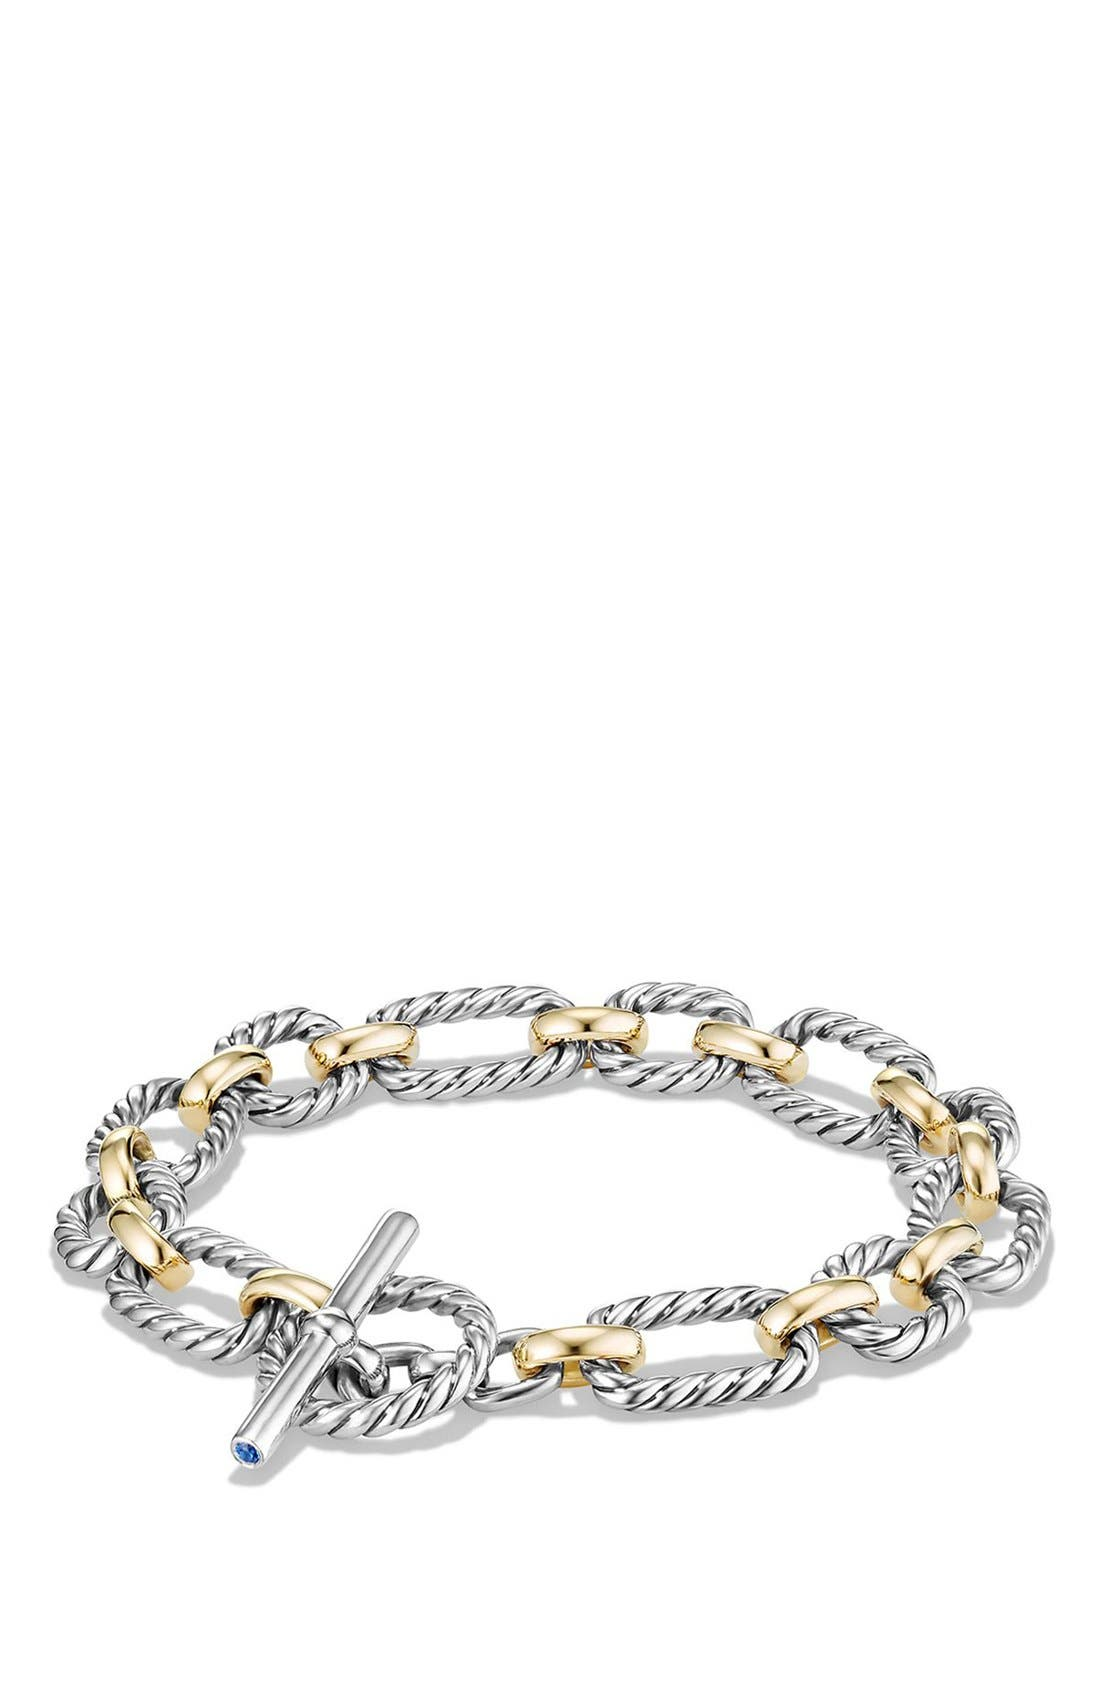 DAVID YURMAN 'Chain' Cushion Link Bracelet with Sapphires